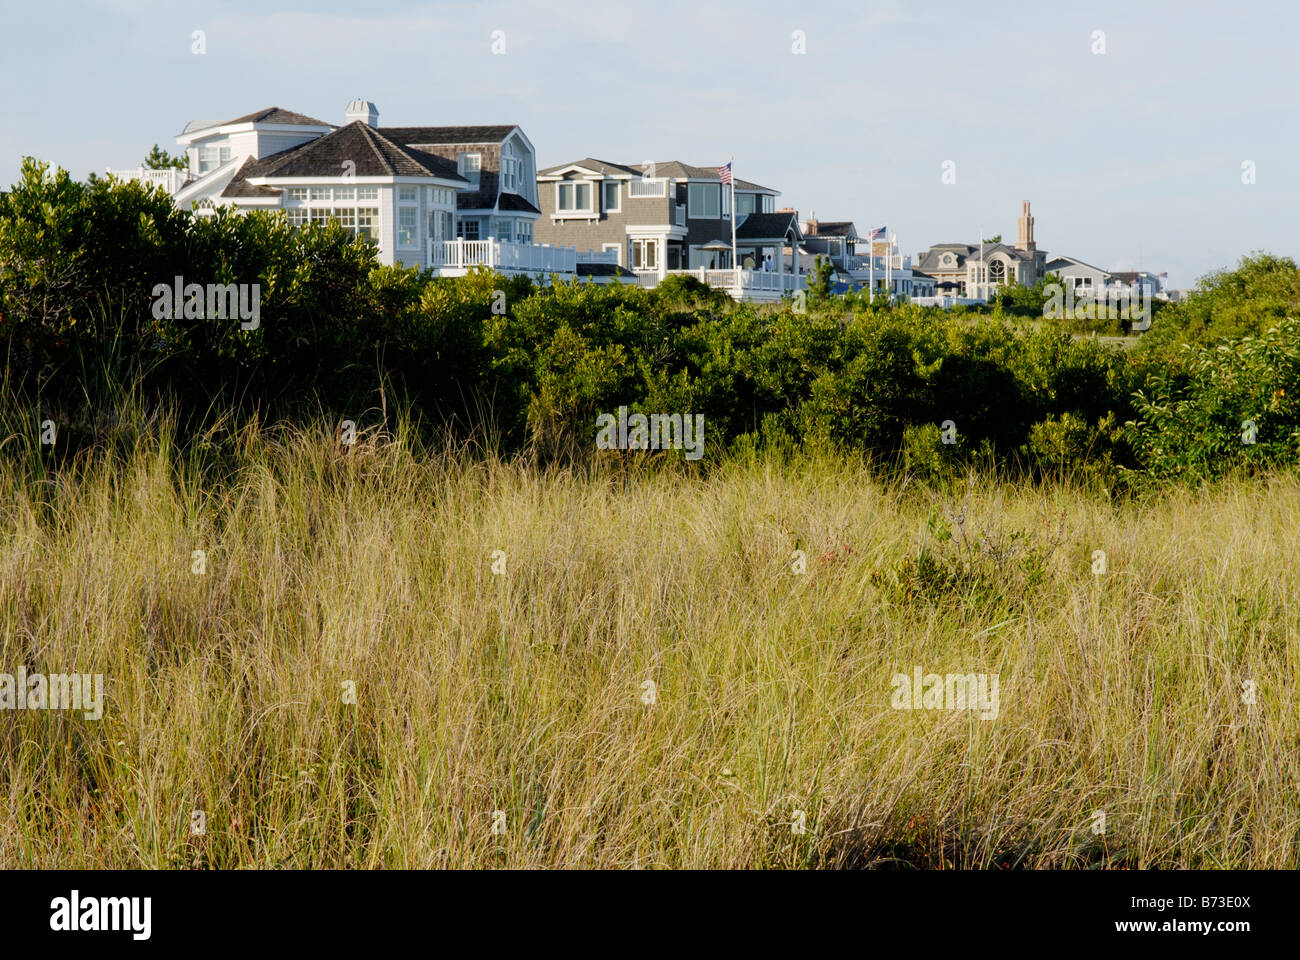 Oceanside upscale houses, Avalon, New Jersey. A buffer of dune grasses protects the shoreline from erosion. - Stock Image